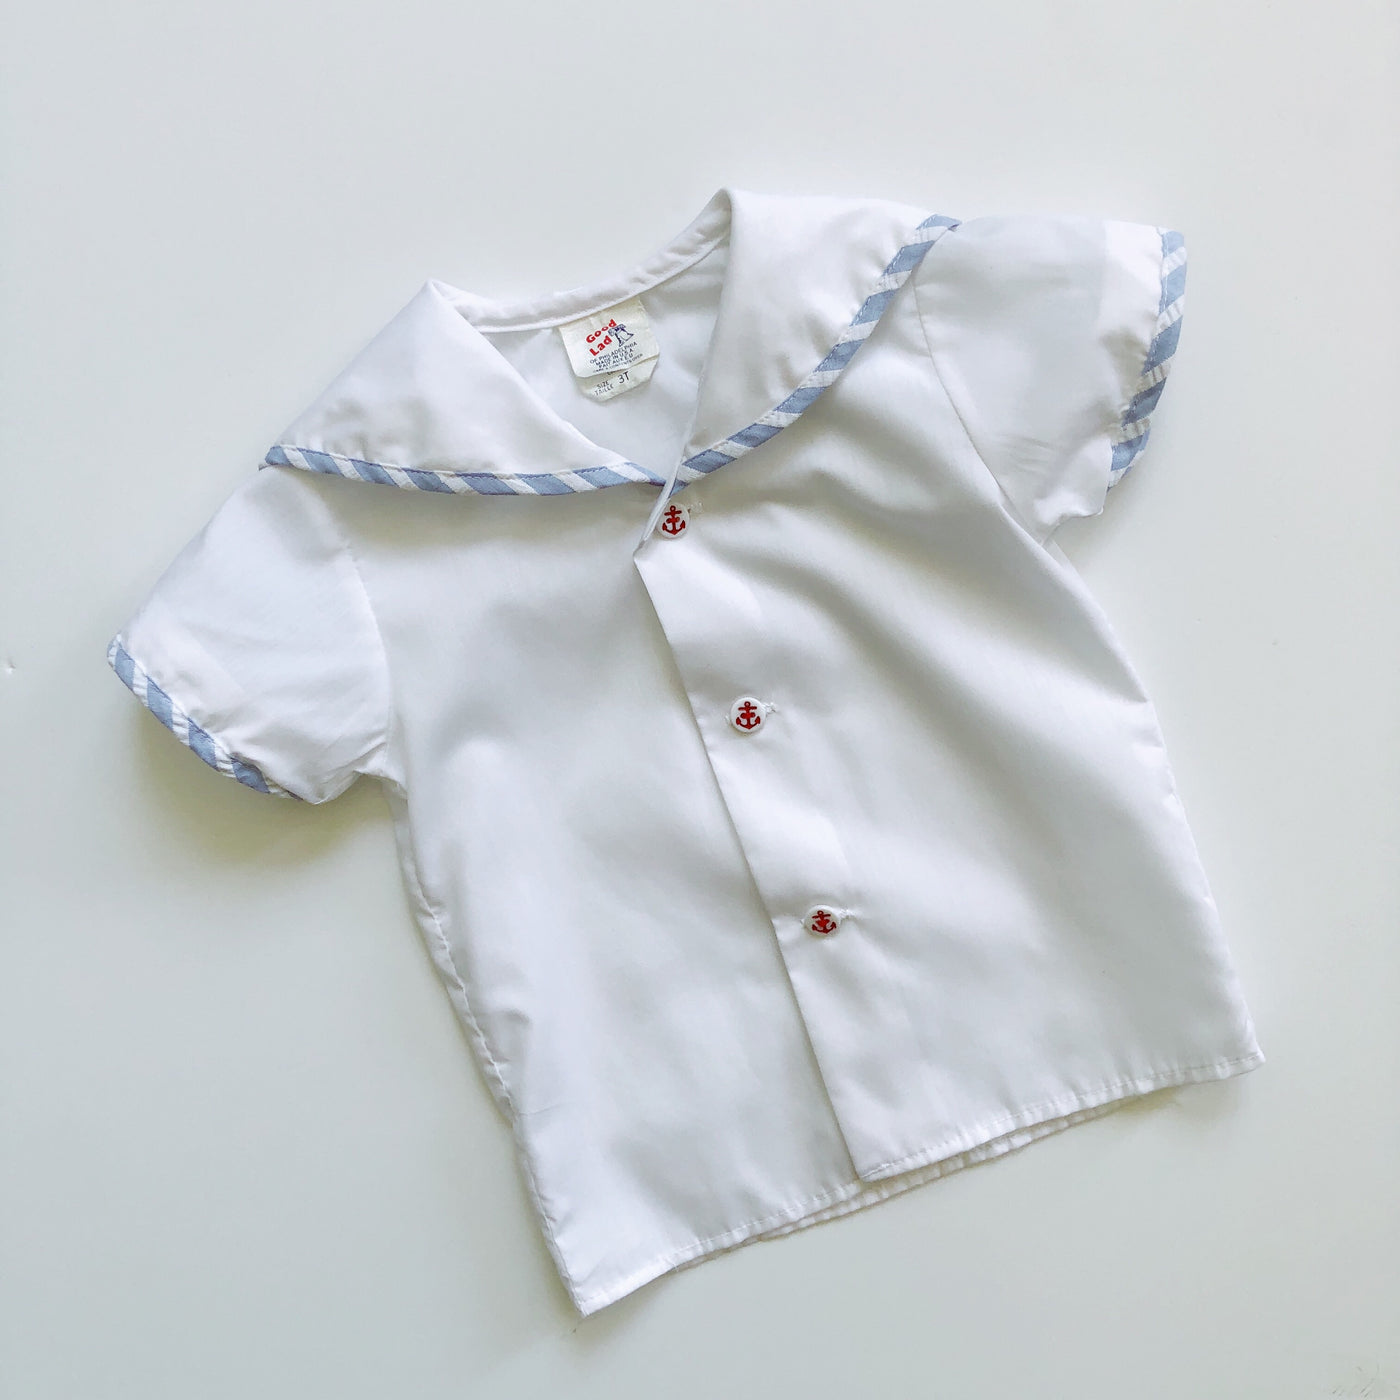 Vintage Good Lad Sailor Shirt / Size 3T